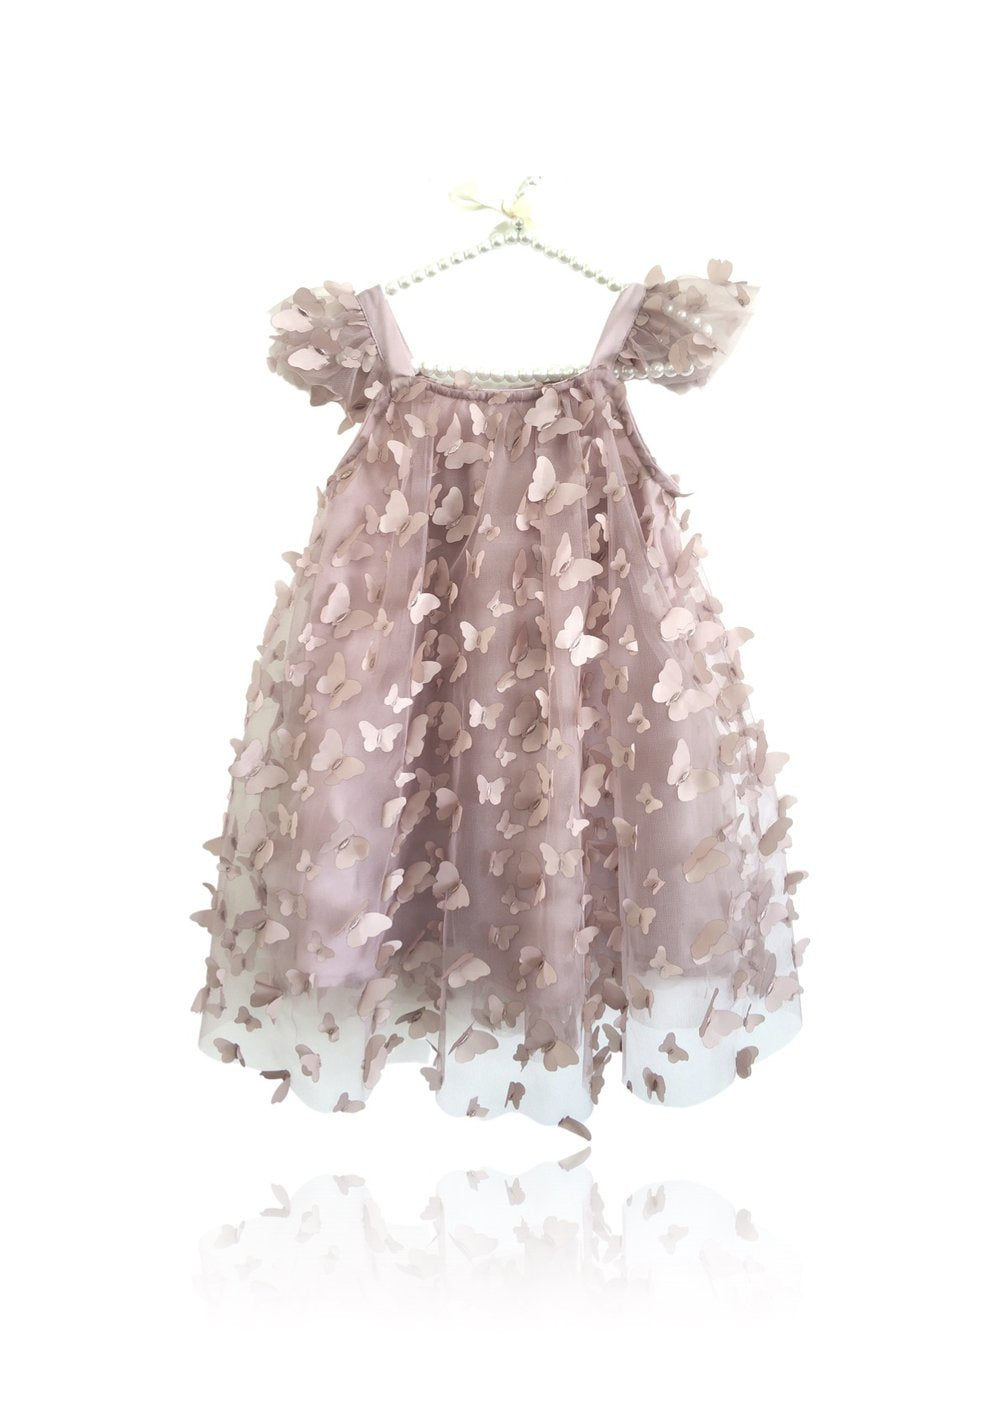 DOLLY BY LE PETIT TOM ® ALLOVER BUTTERFLIES TUTU DRESS MAUVE PINK